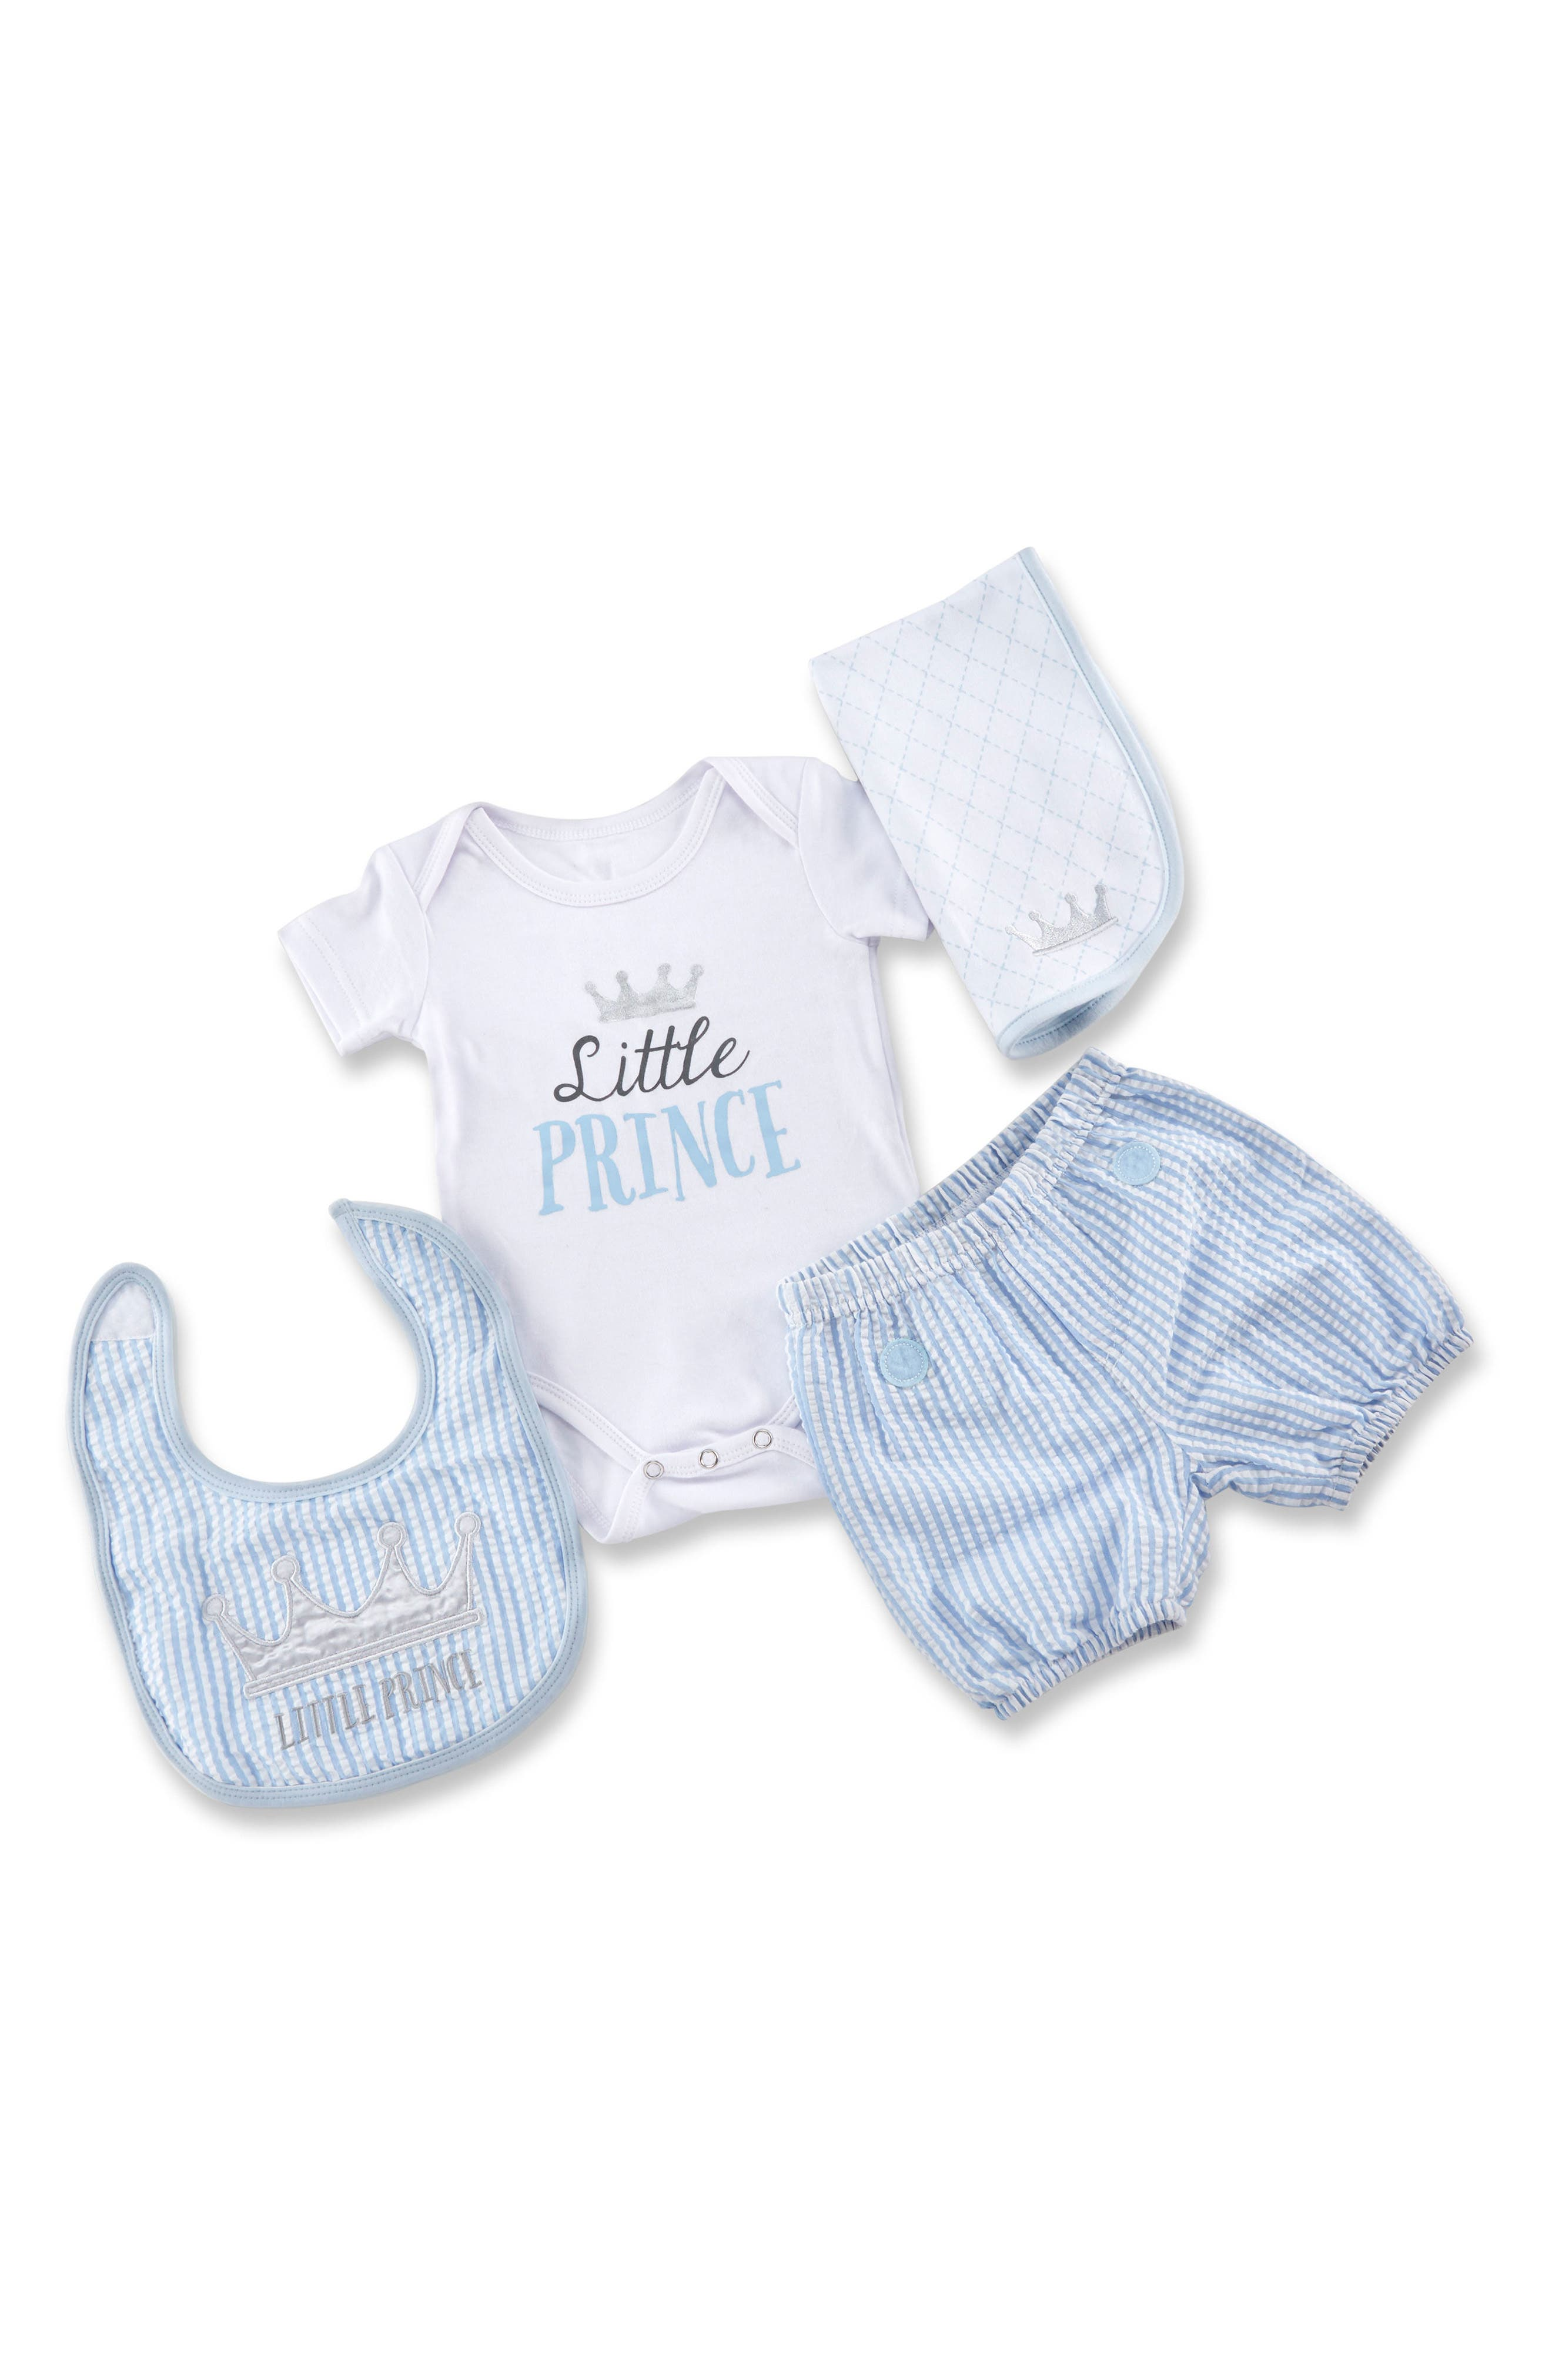 Little Prince Gift Set,                         Main,                         color, Blue, White And Silver